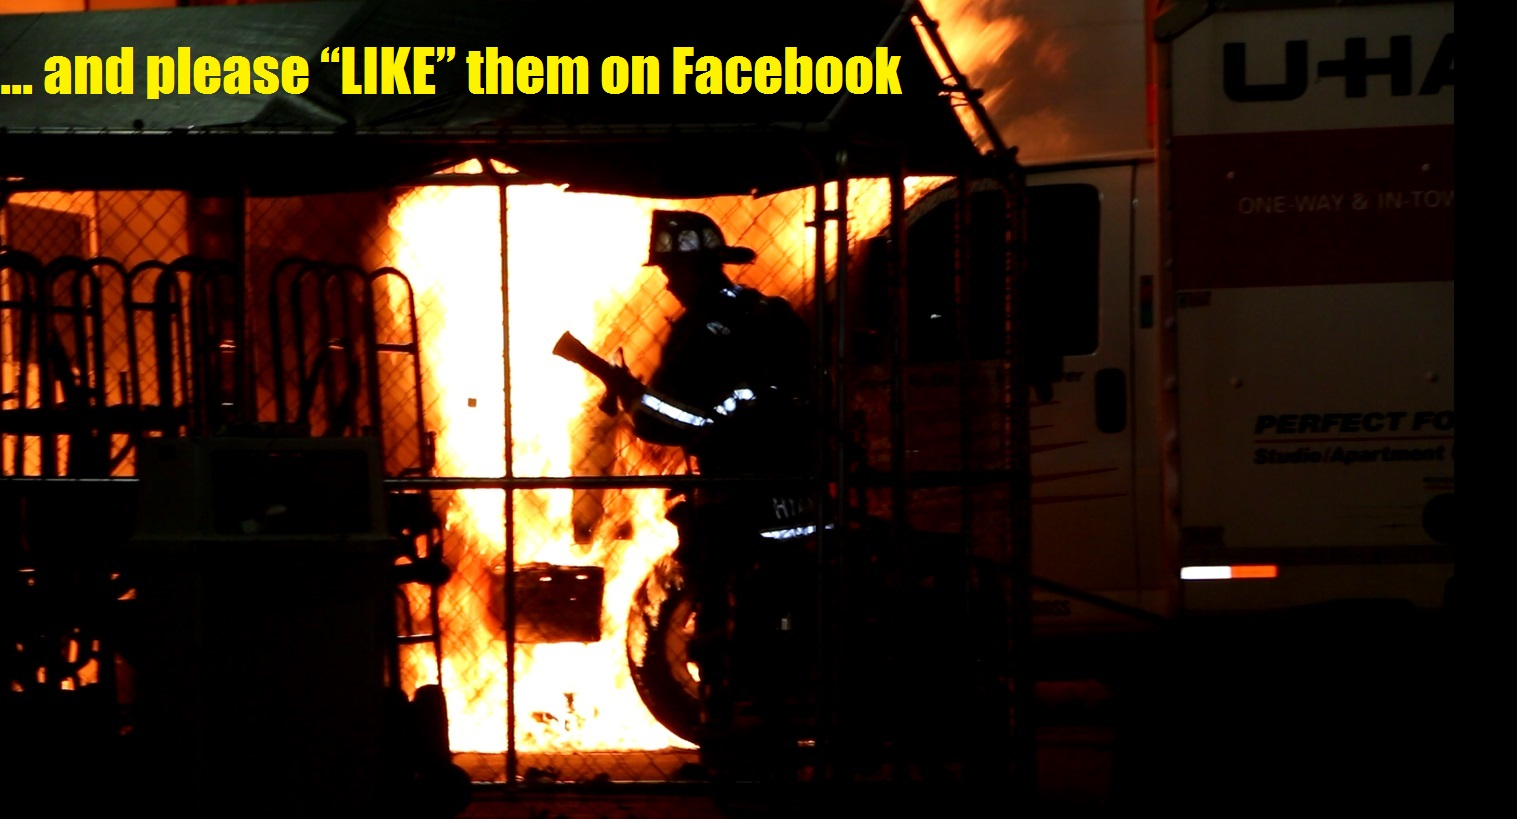 Hyannis Firefighters want you to take a look at this RIVETING VIDEO!